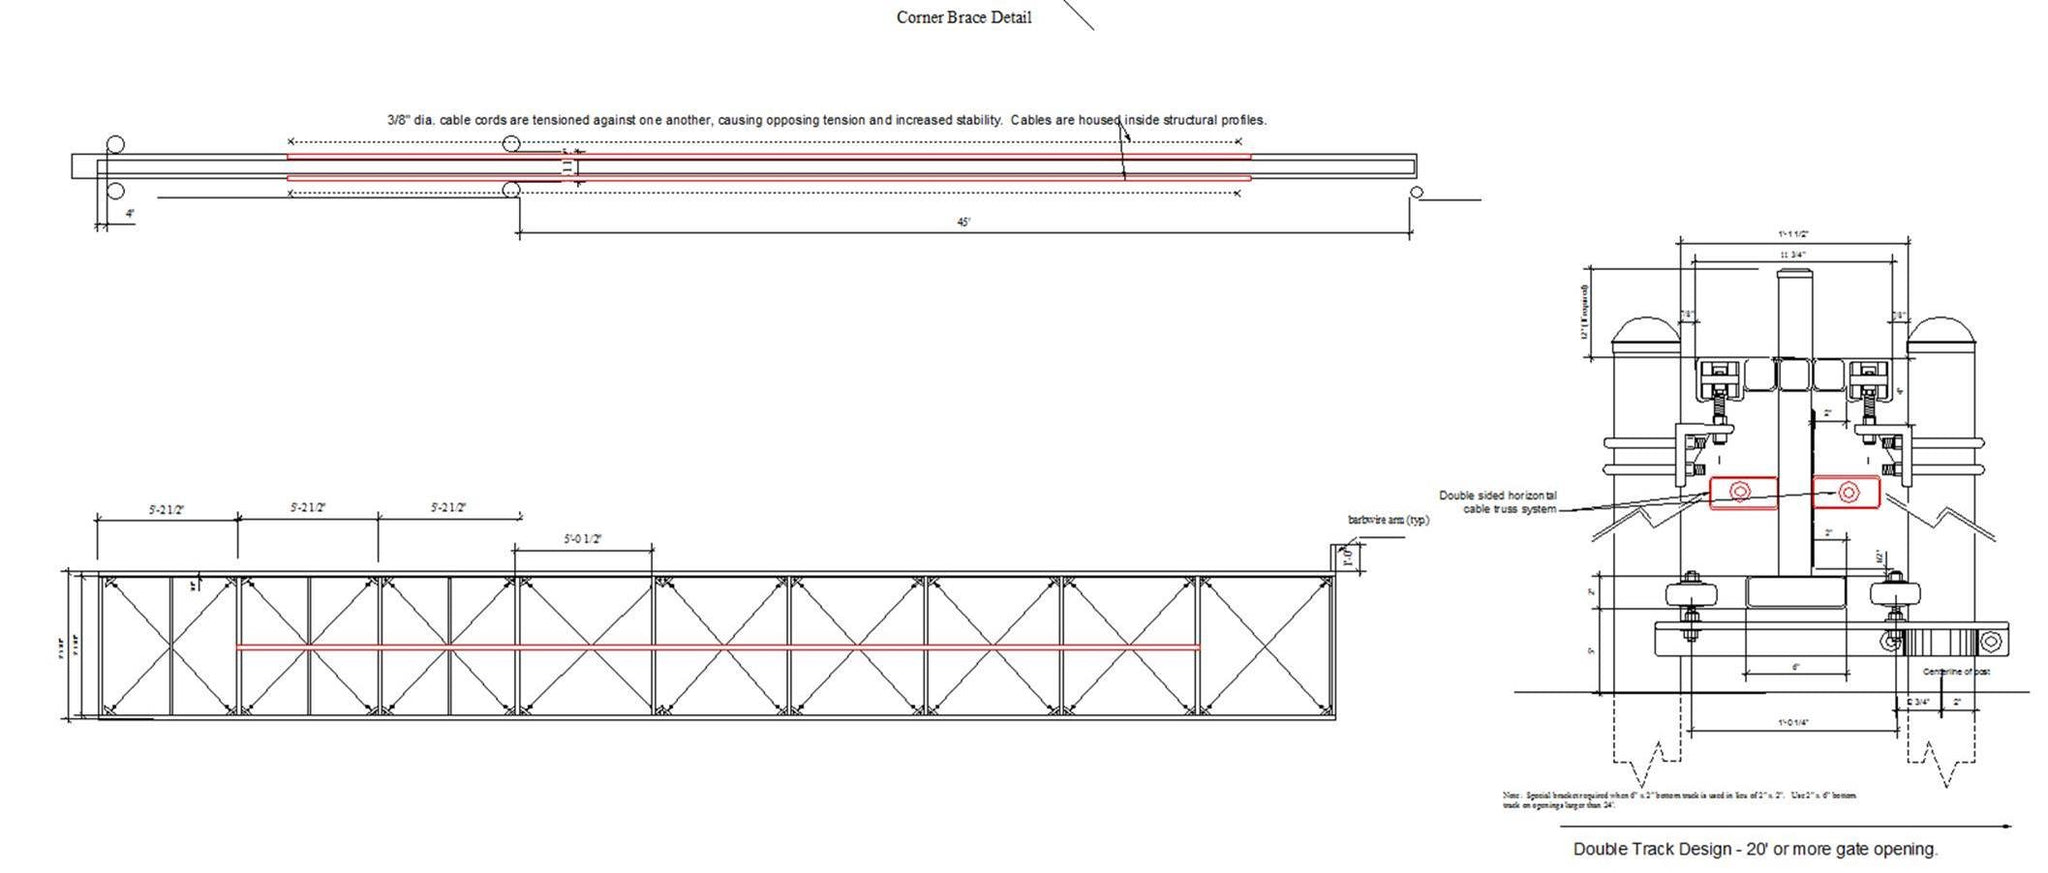 Corner brace detail for a horizontal cantilever truss system